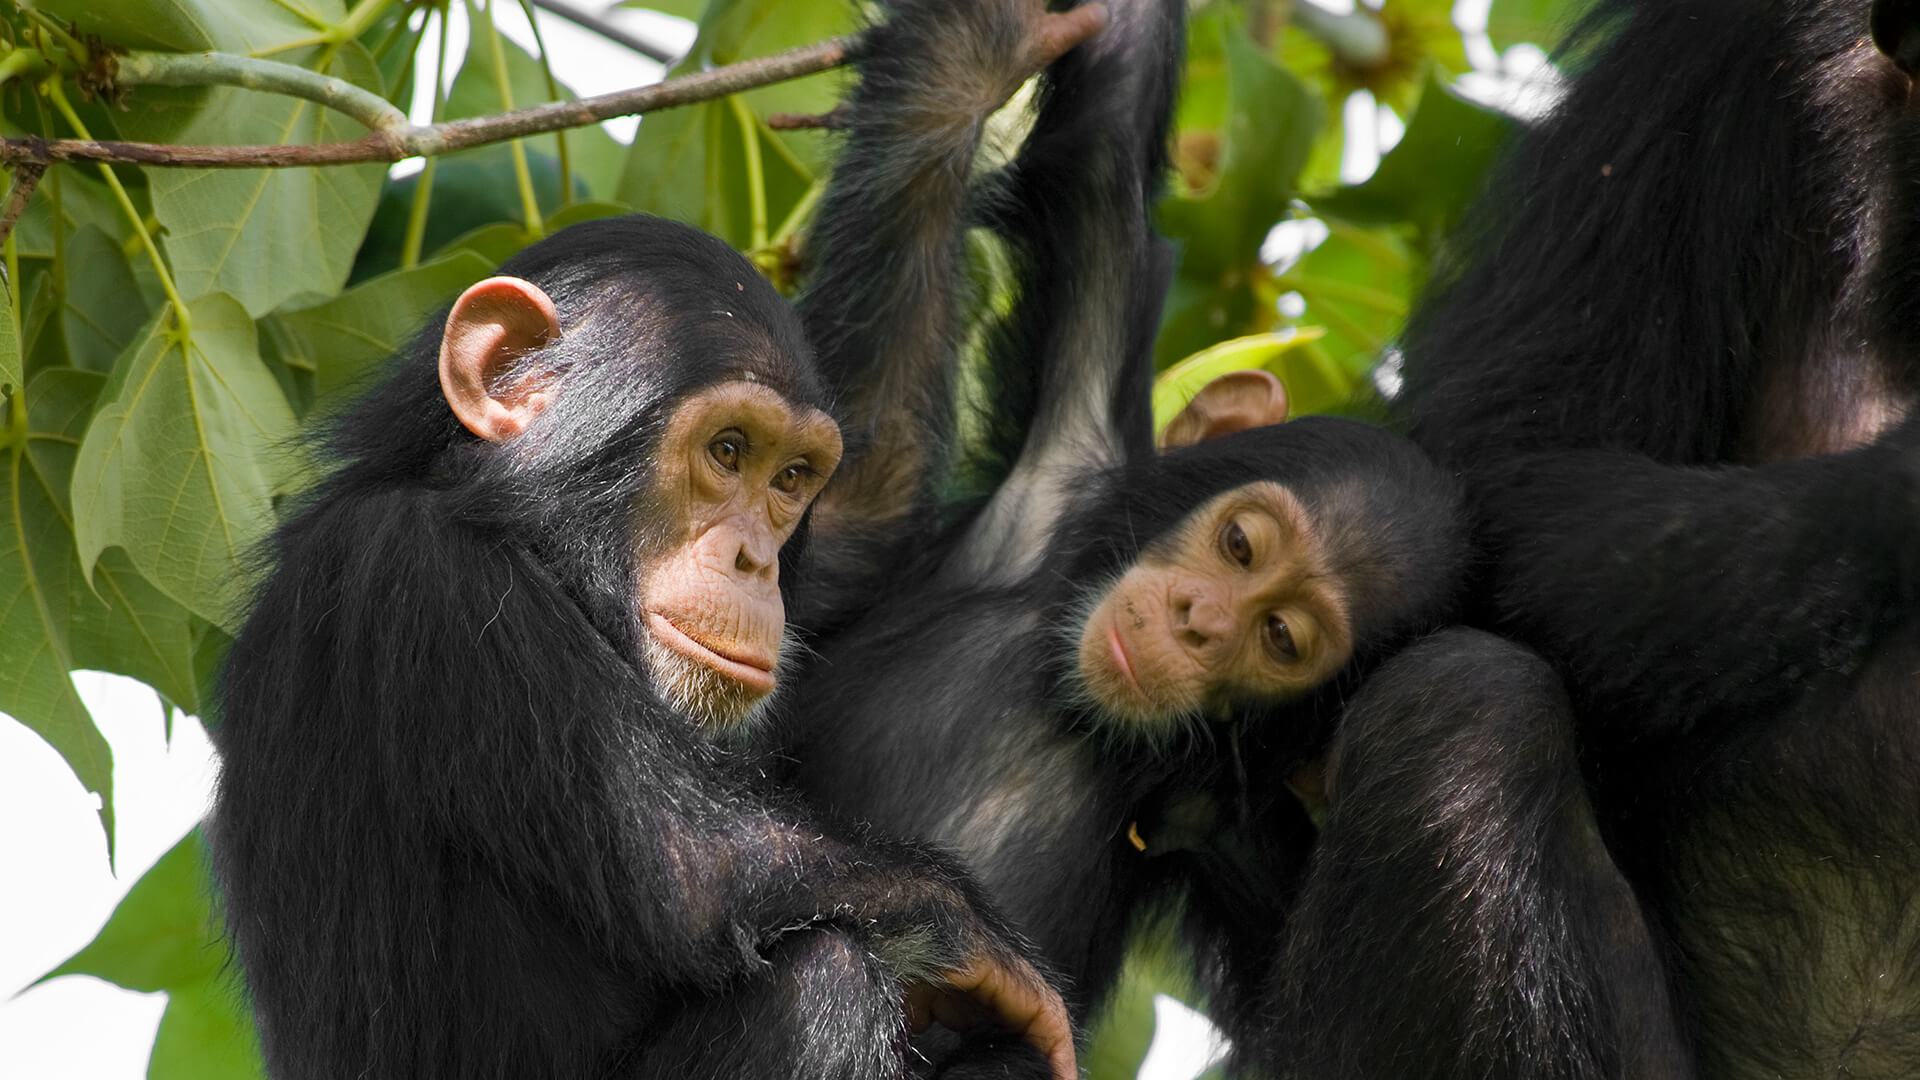 Two young chimpanzees sitting in a green leafy tree next to an adult